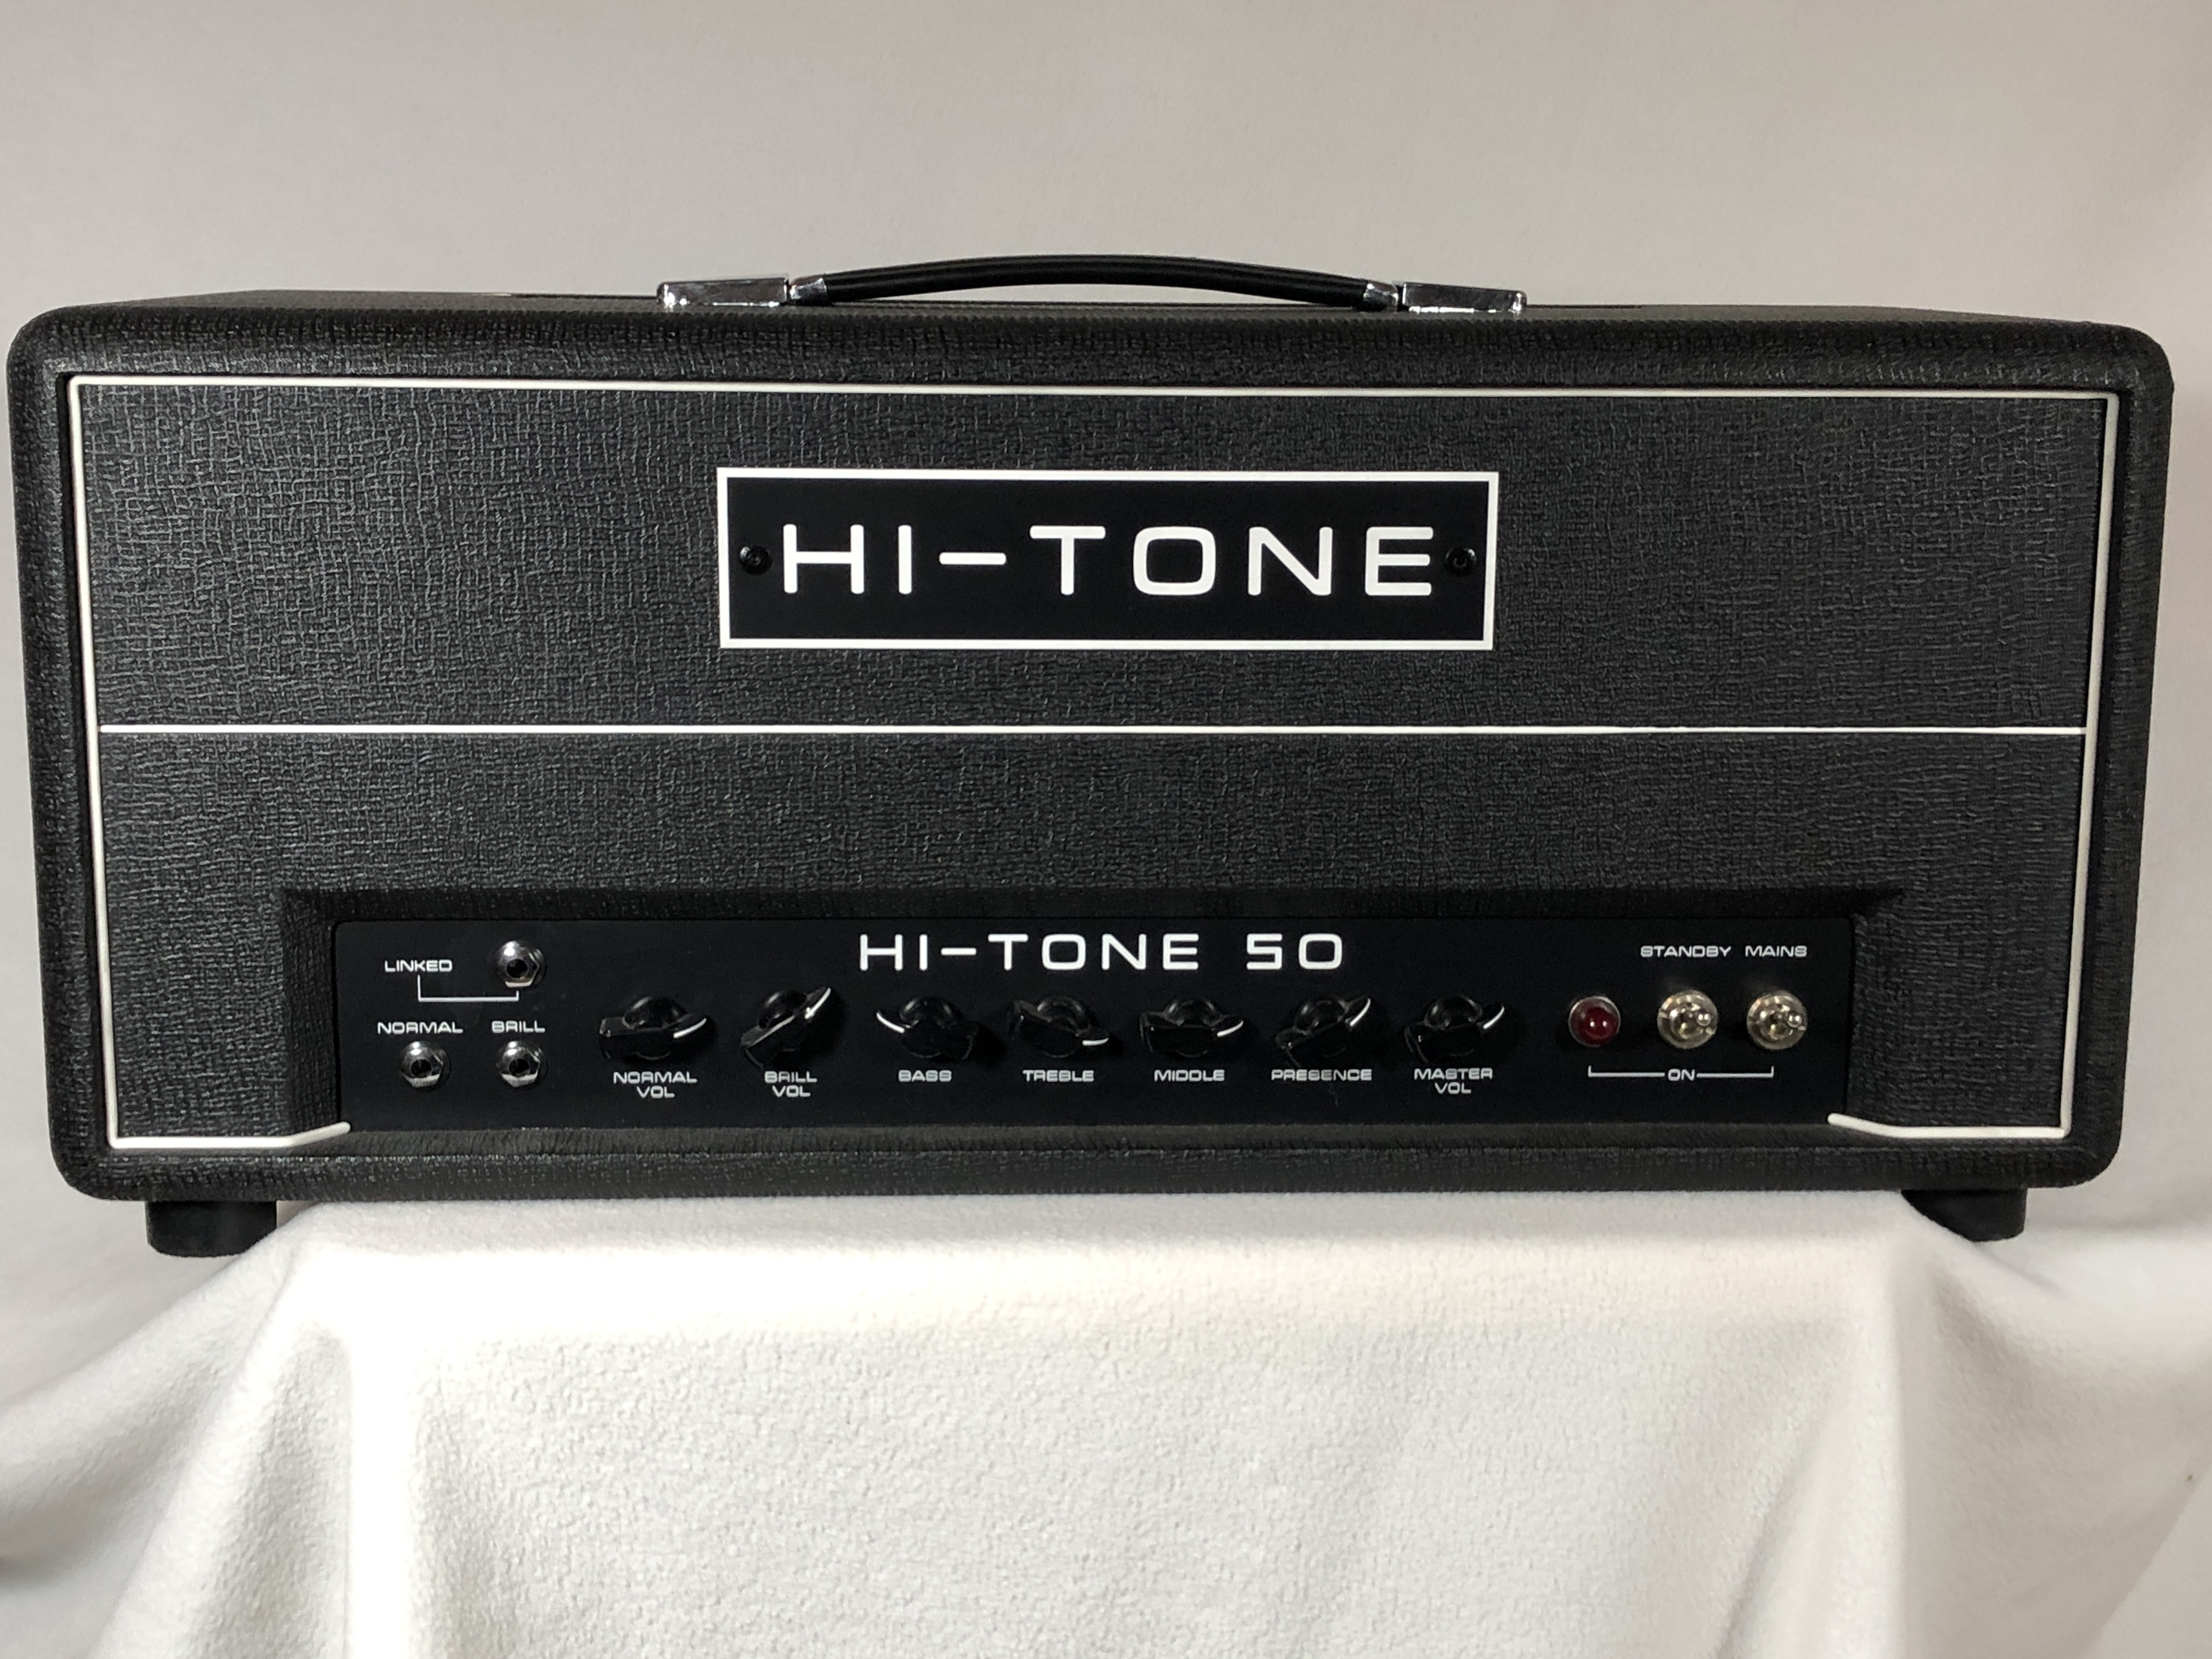 Hi-Tone DG50 – Near Mint Condition